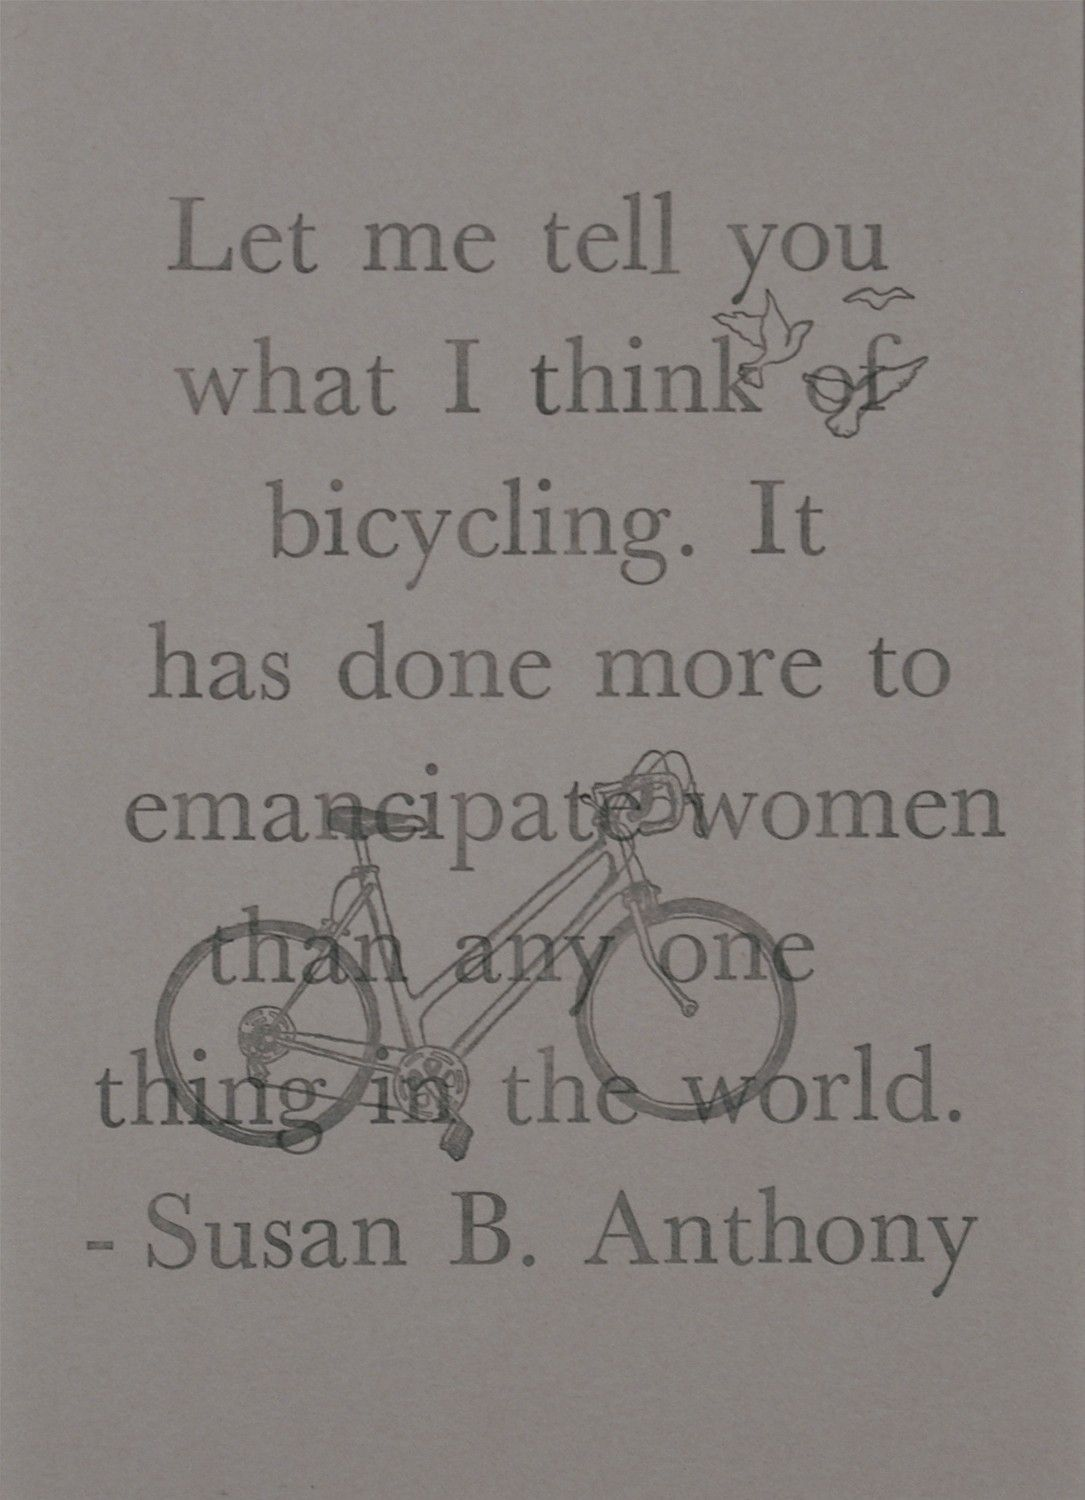 Susan B Anthony Journalist Worked As A Teacher To Help